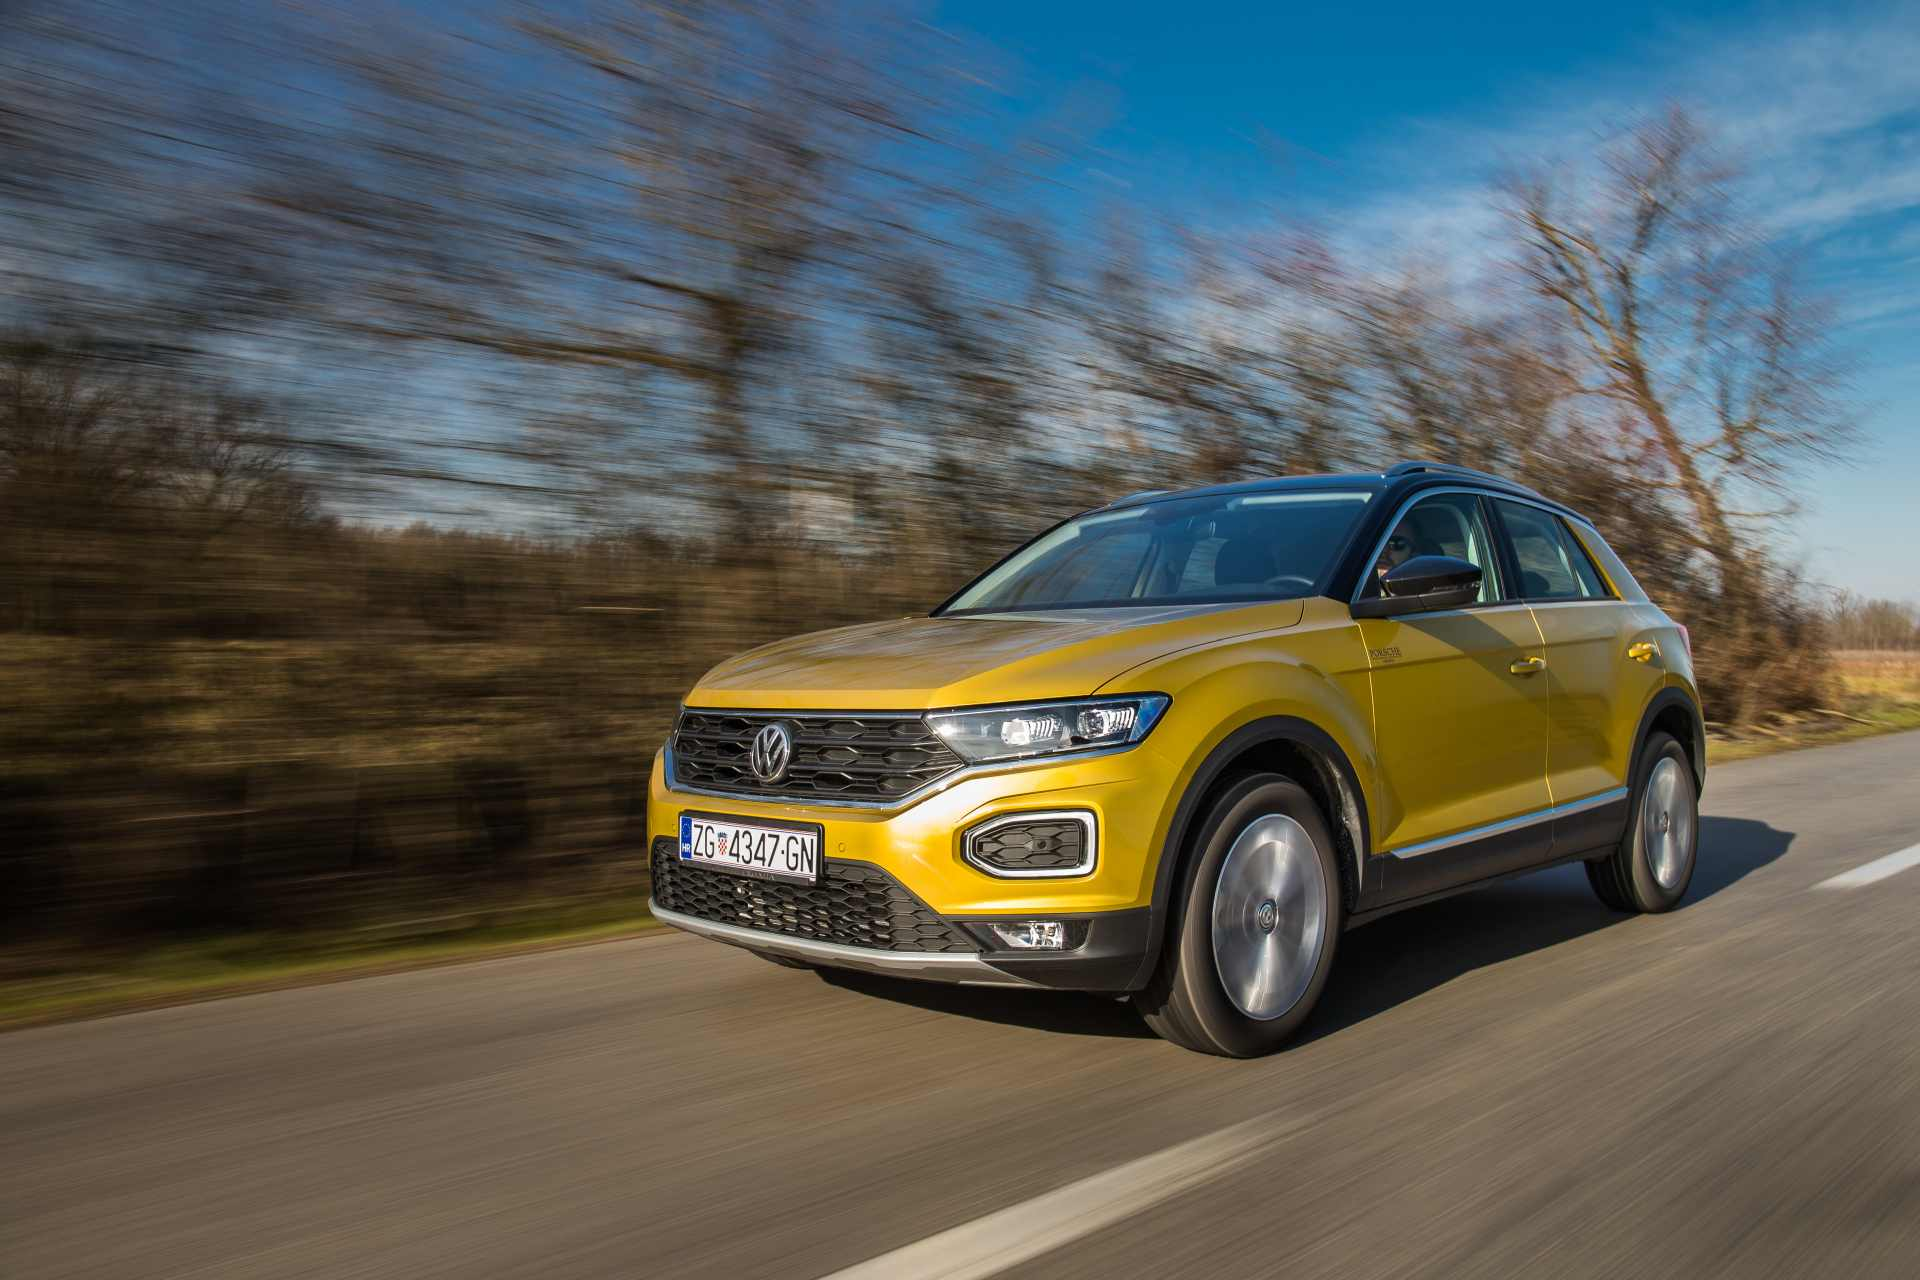 Image for VW T-Roc 1.0 TSI Design sa 115 KS poželjniji je čak i od bratskog Golfa? Stanite u red…